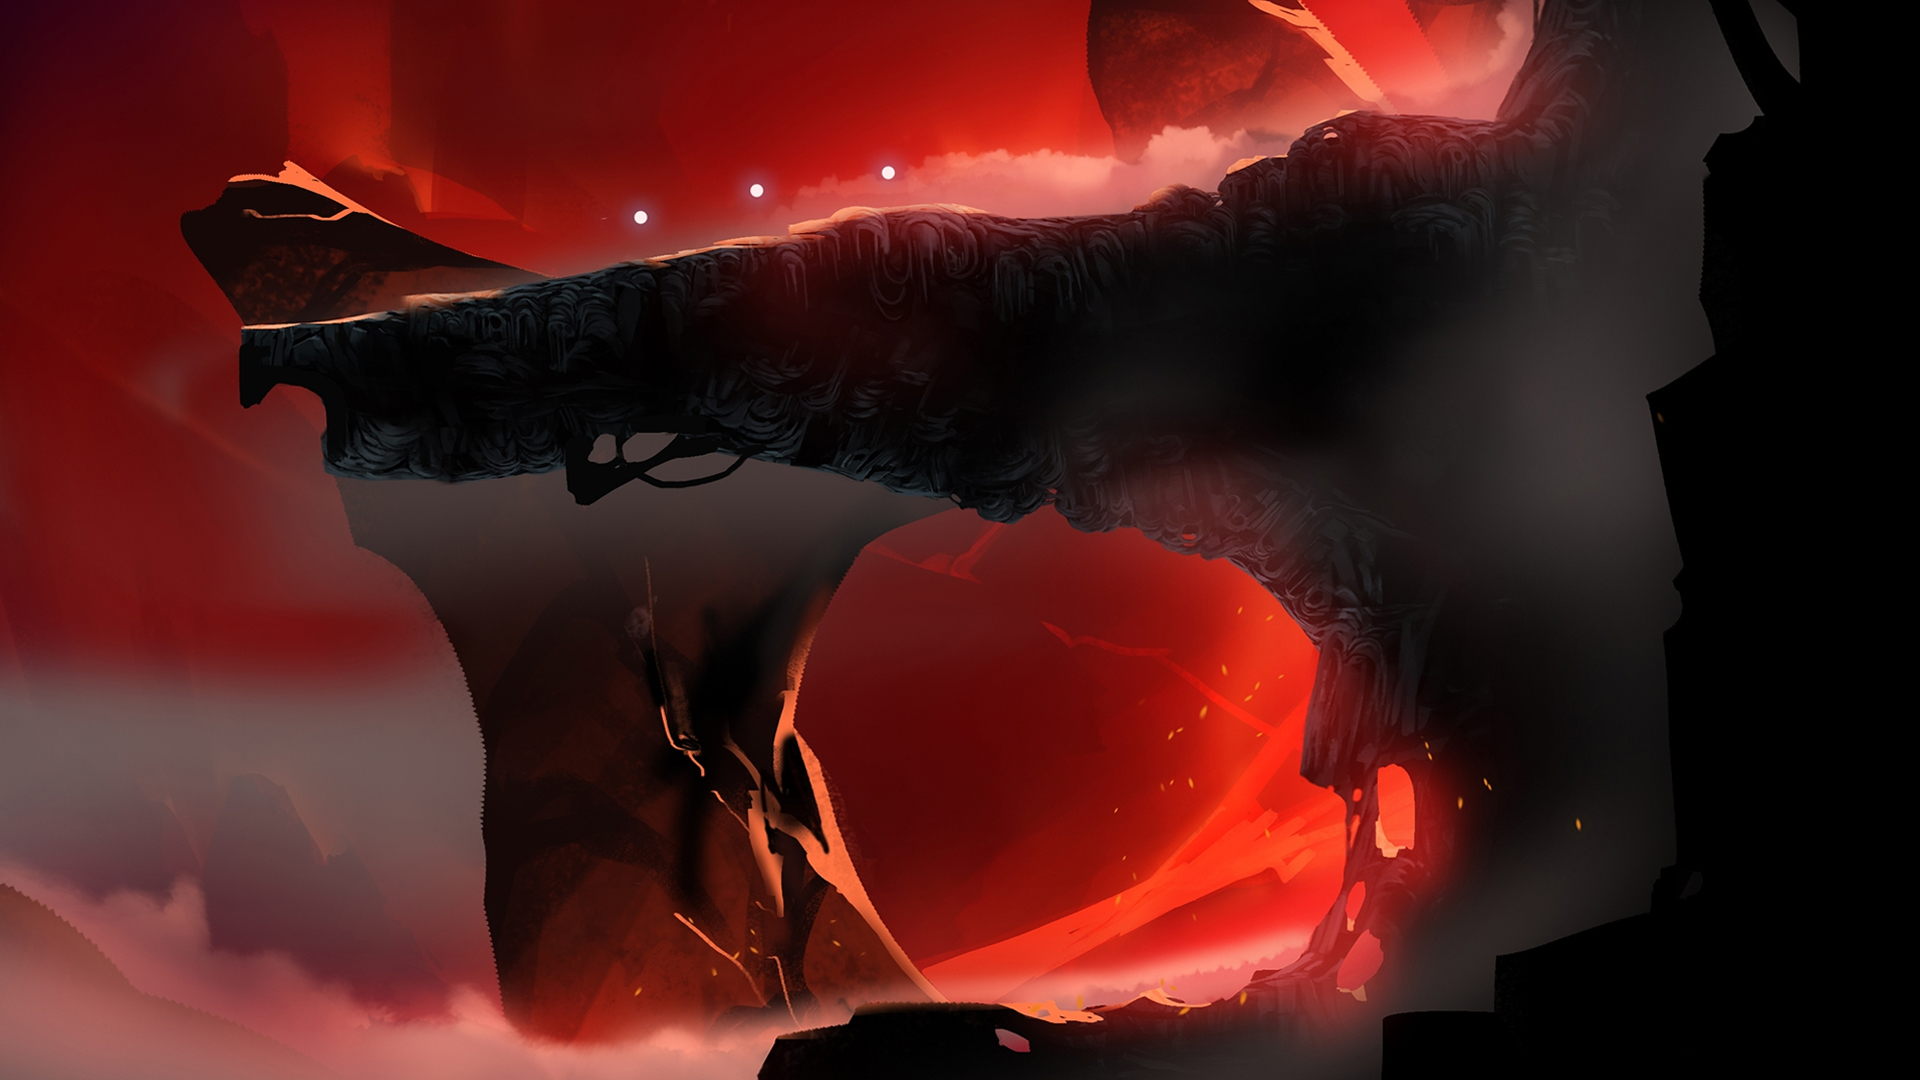 Ori And The Blind Forest Hd Wallpaper Background Image